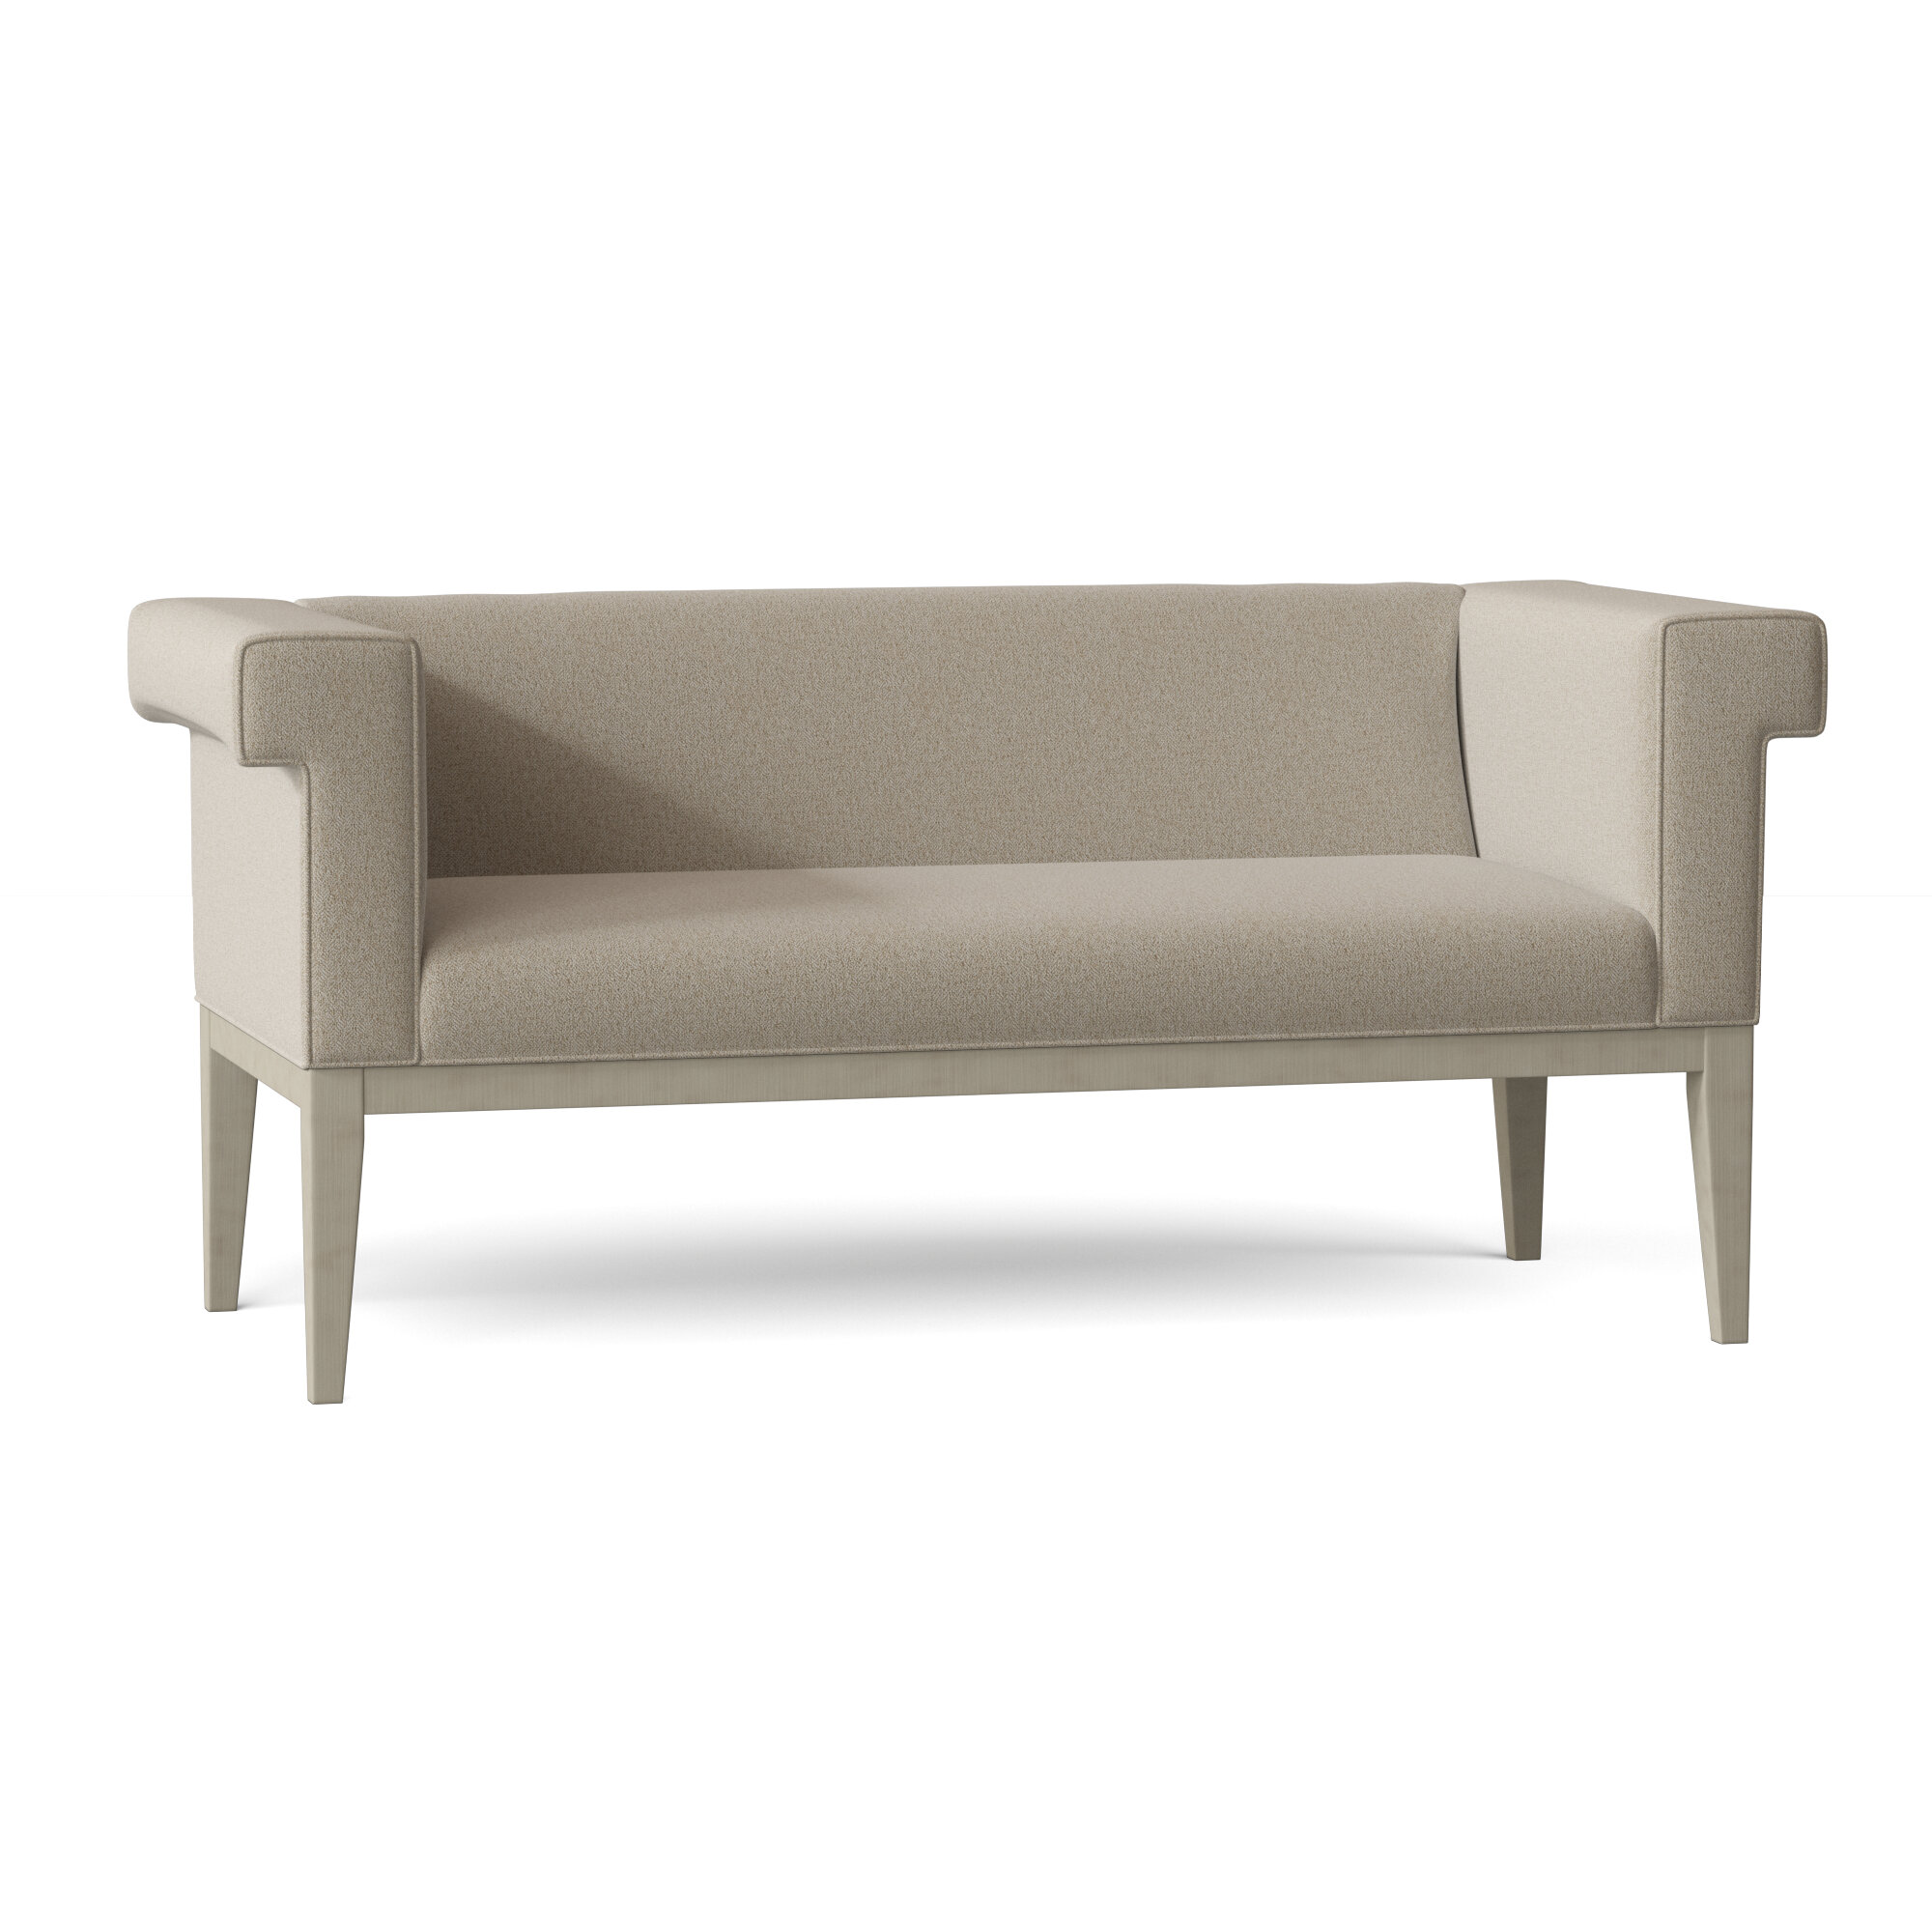 Upholstered Fairfield Chair Benches You Ll Love In 2021 Wayfair